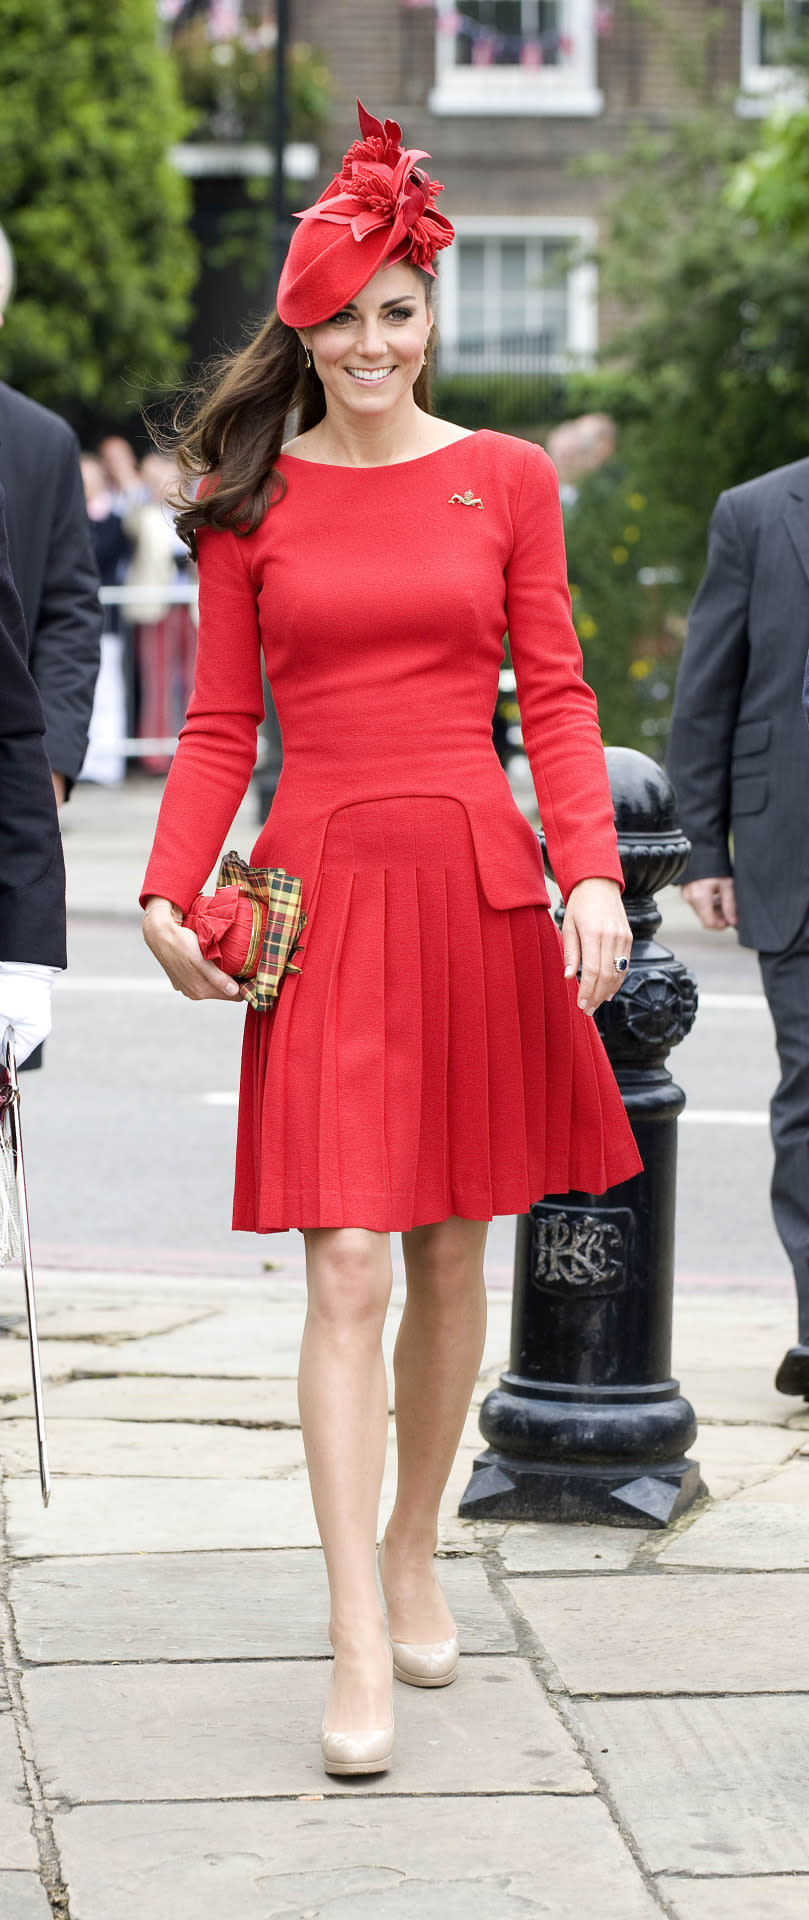 <p>Kate enlisted the house of Alexander McQueen to design a bespoke red dress for the Queen's Diamond Jubilee. She carried a matching McQueen bow clutch and wore a hat by Lock & Co. </p><p><i>[Photo: PA]</i></p>